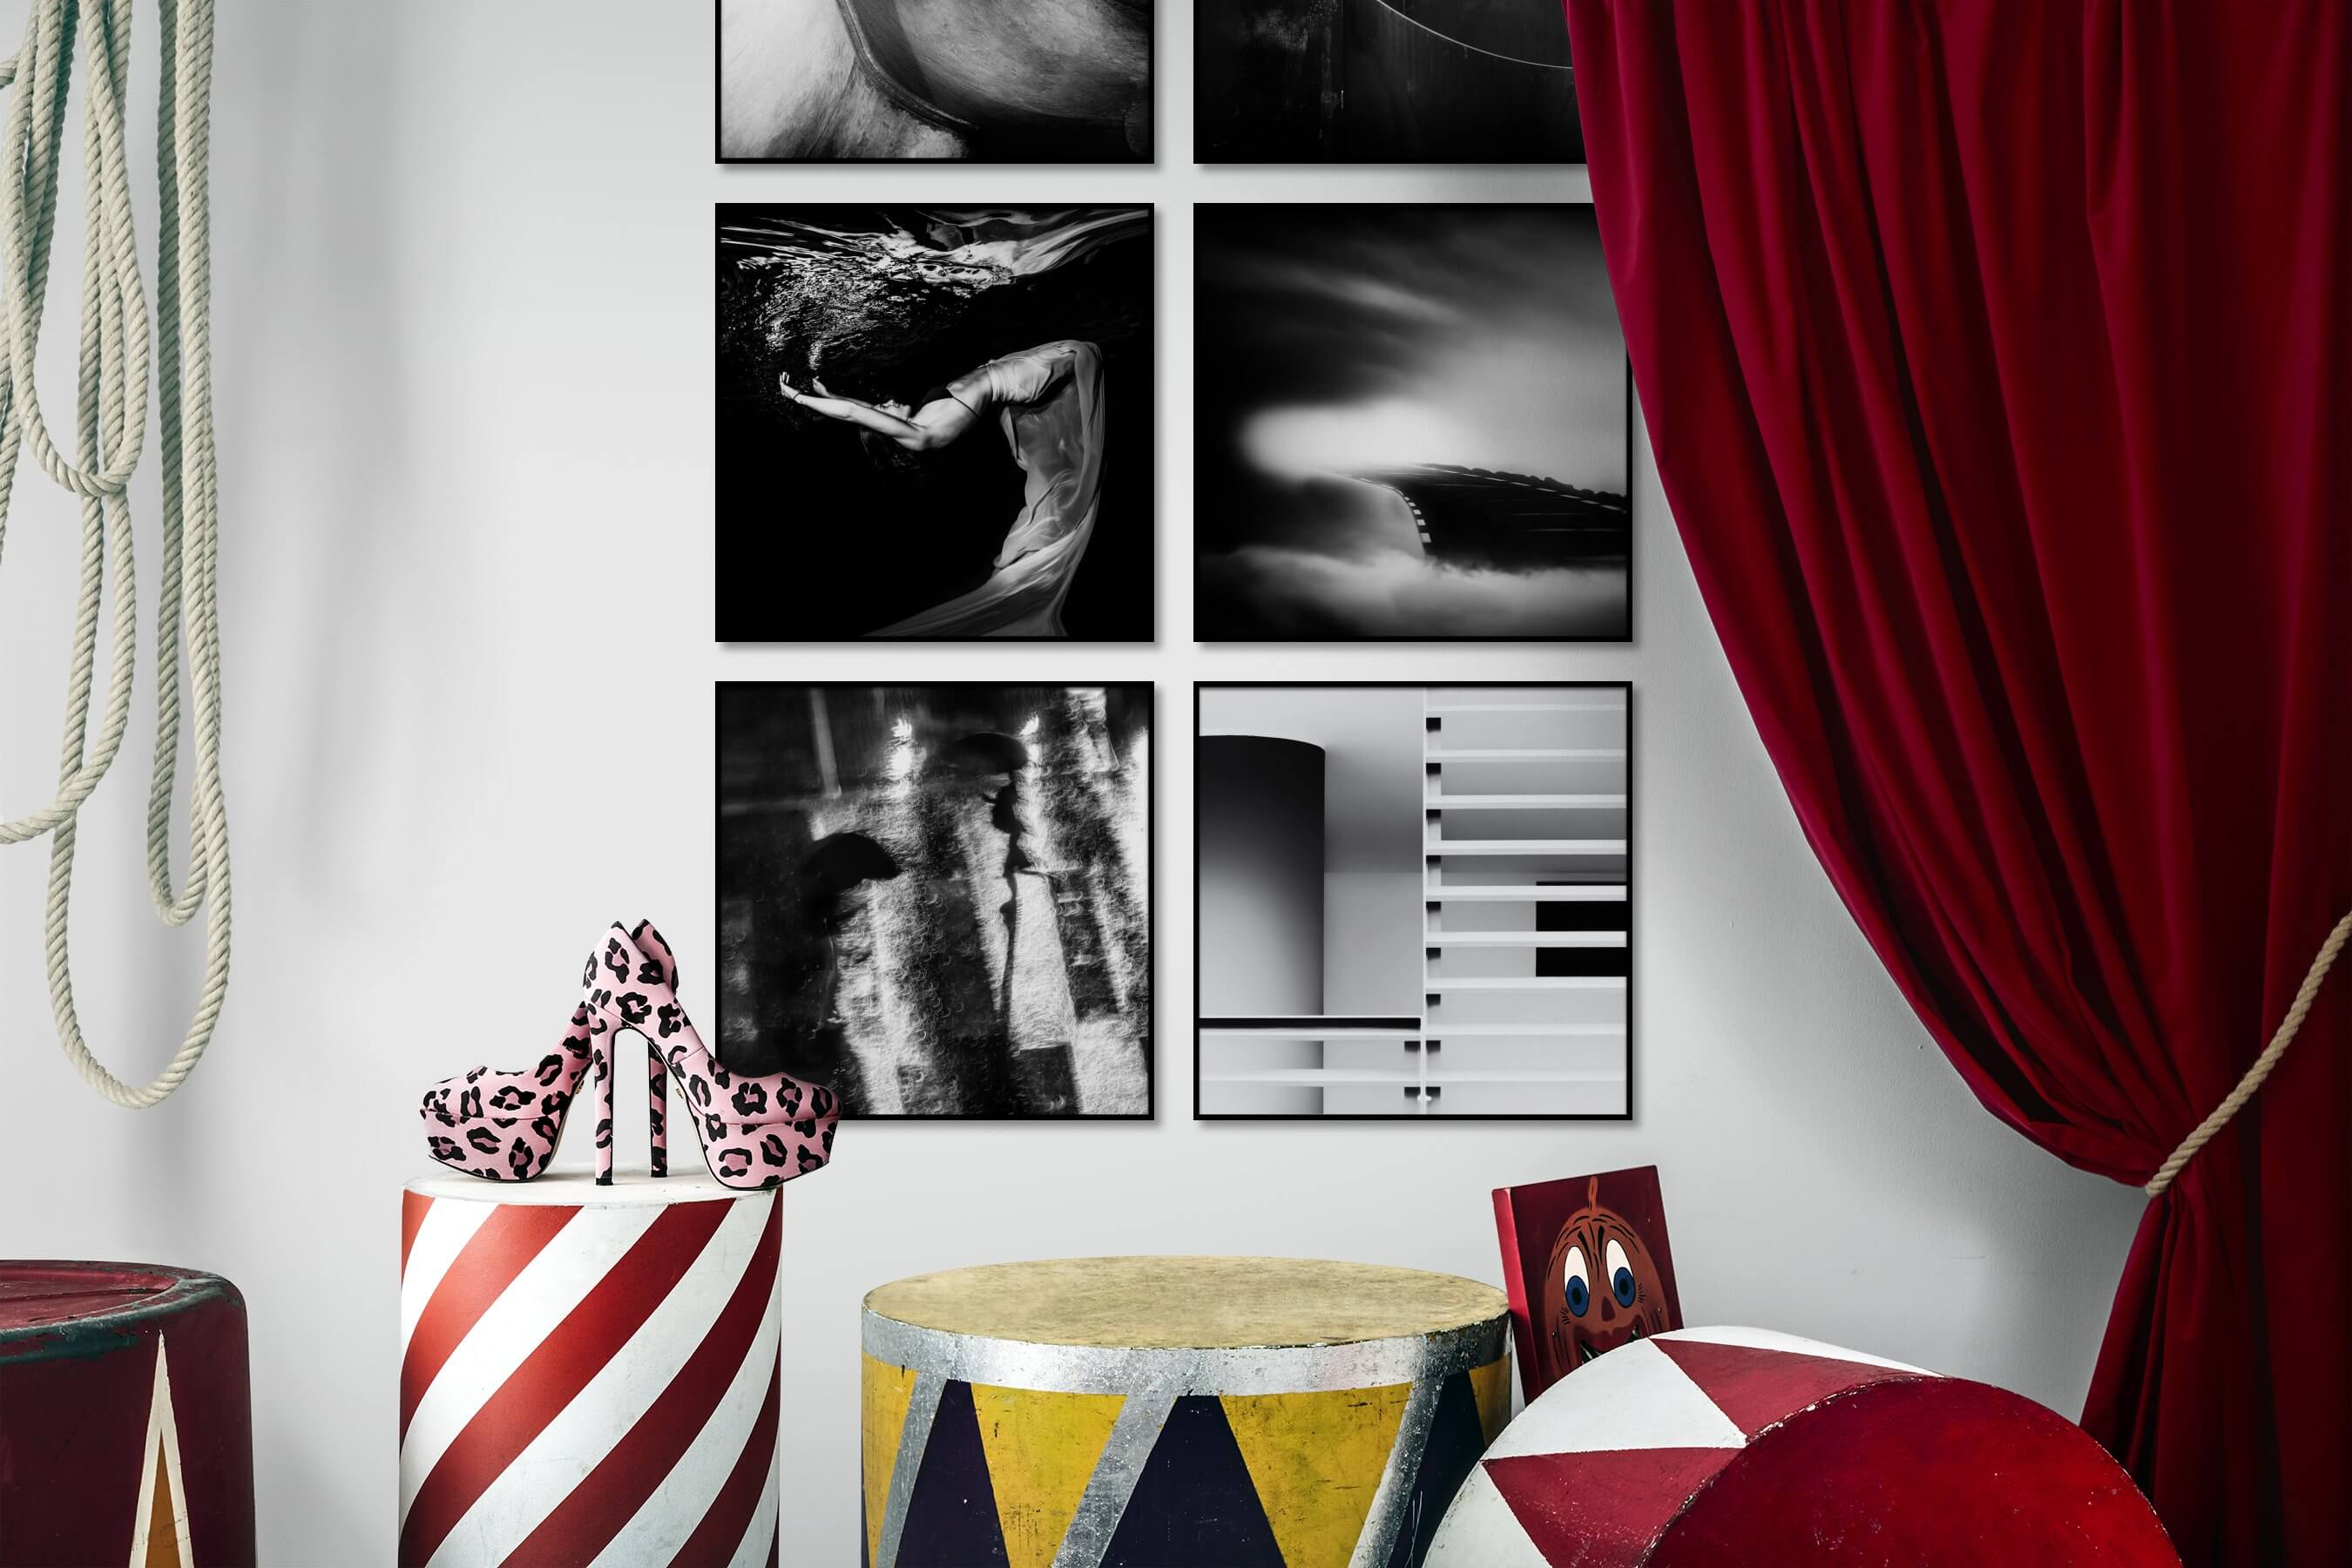 Gallery wall idea with six framed pictures arranged on a wall depicting Artsy, Black & White, For the Moderate, Fashion & Beauty, Dark Tones, Beach & Water, Mindfulness, and City Life